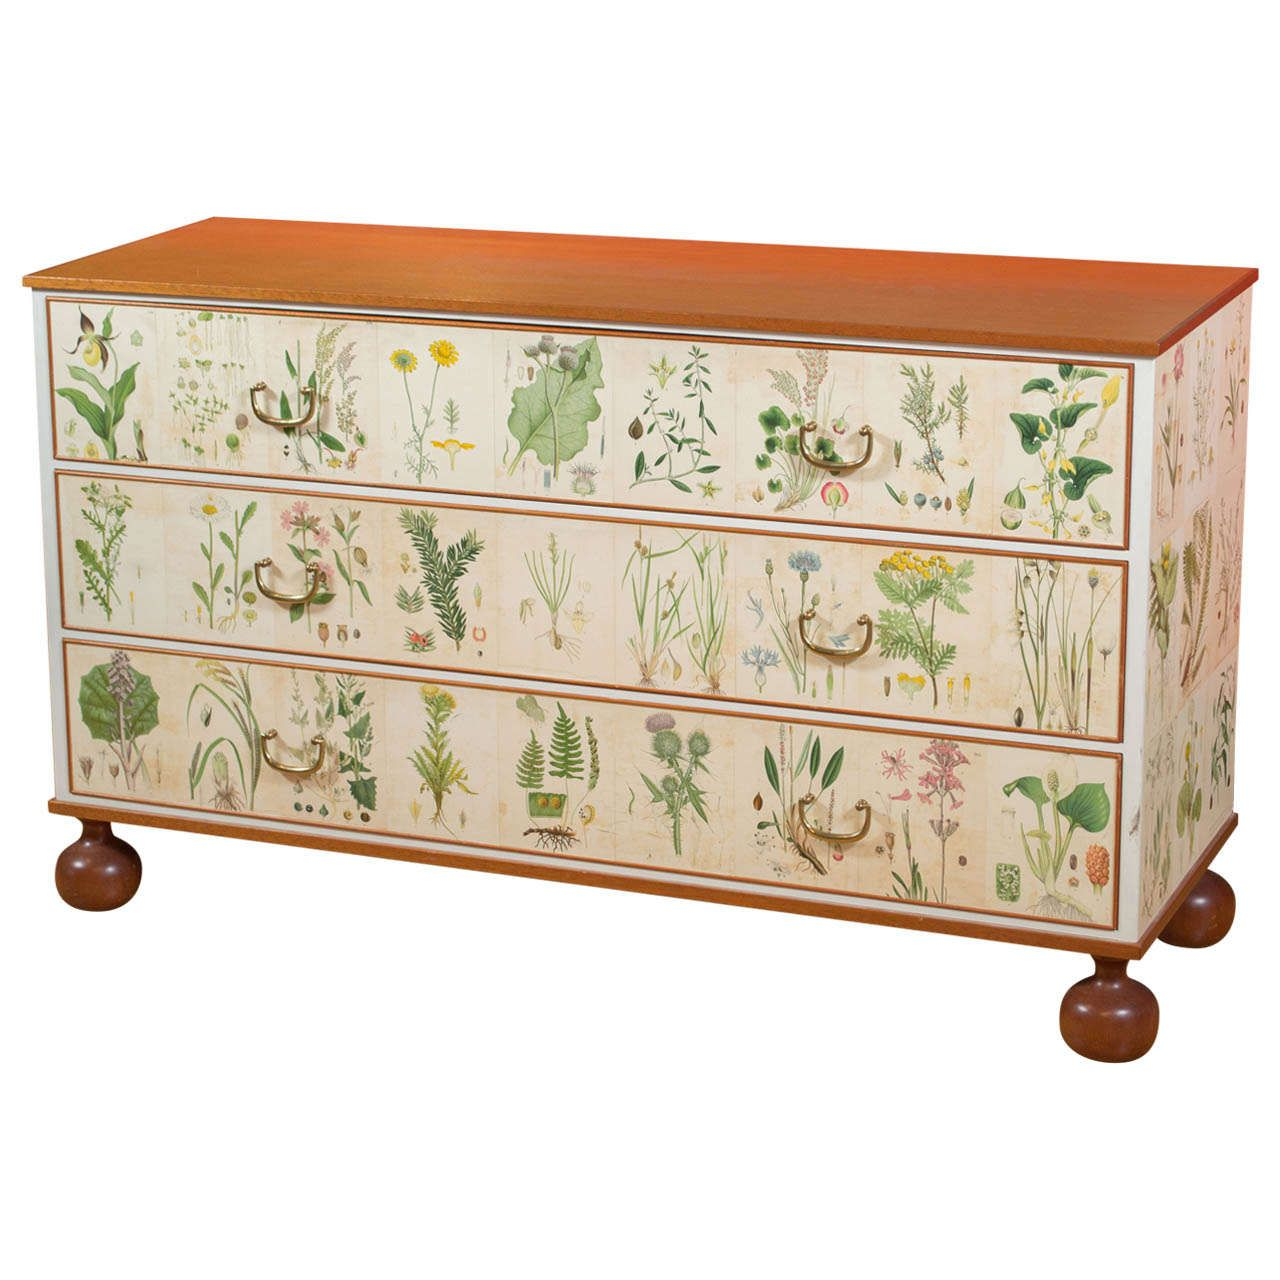 Josef Frank - Chest of Drawers | From a unique collection of antique and modern dressers at https://www.1stdibs.com/furniture/storage-case-pieces/dressers/